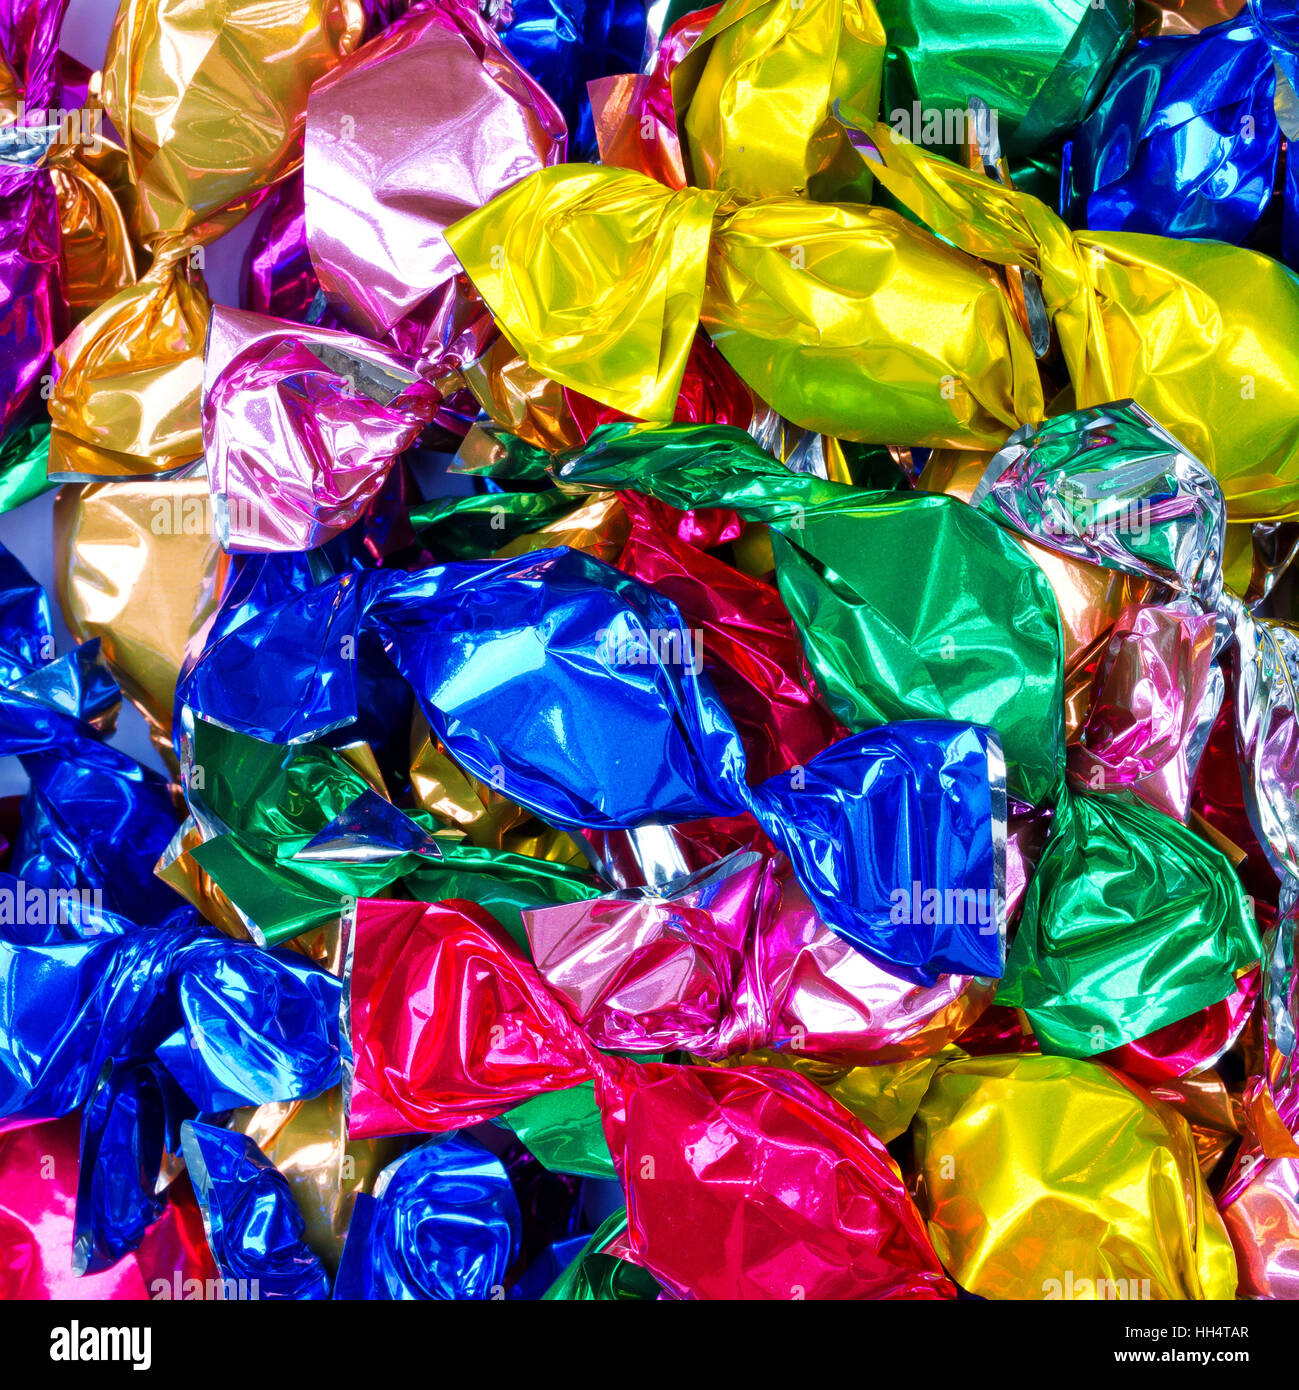 Background with colorful bonbons - Stock Image